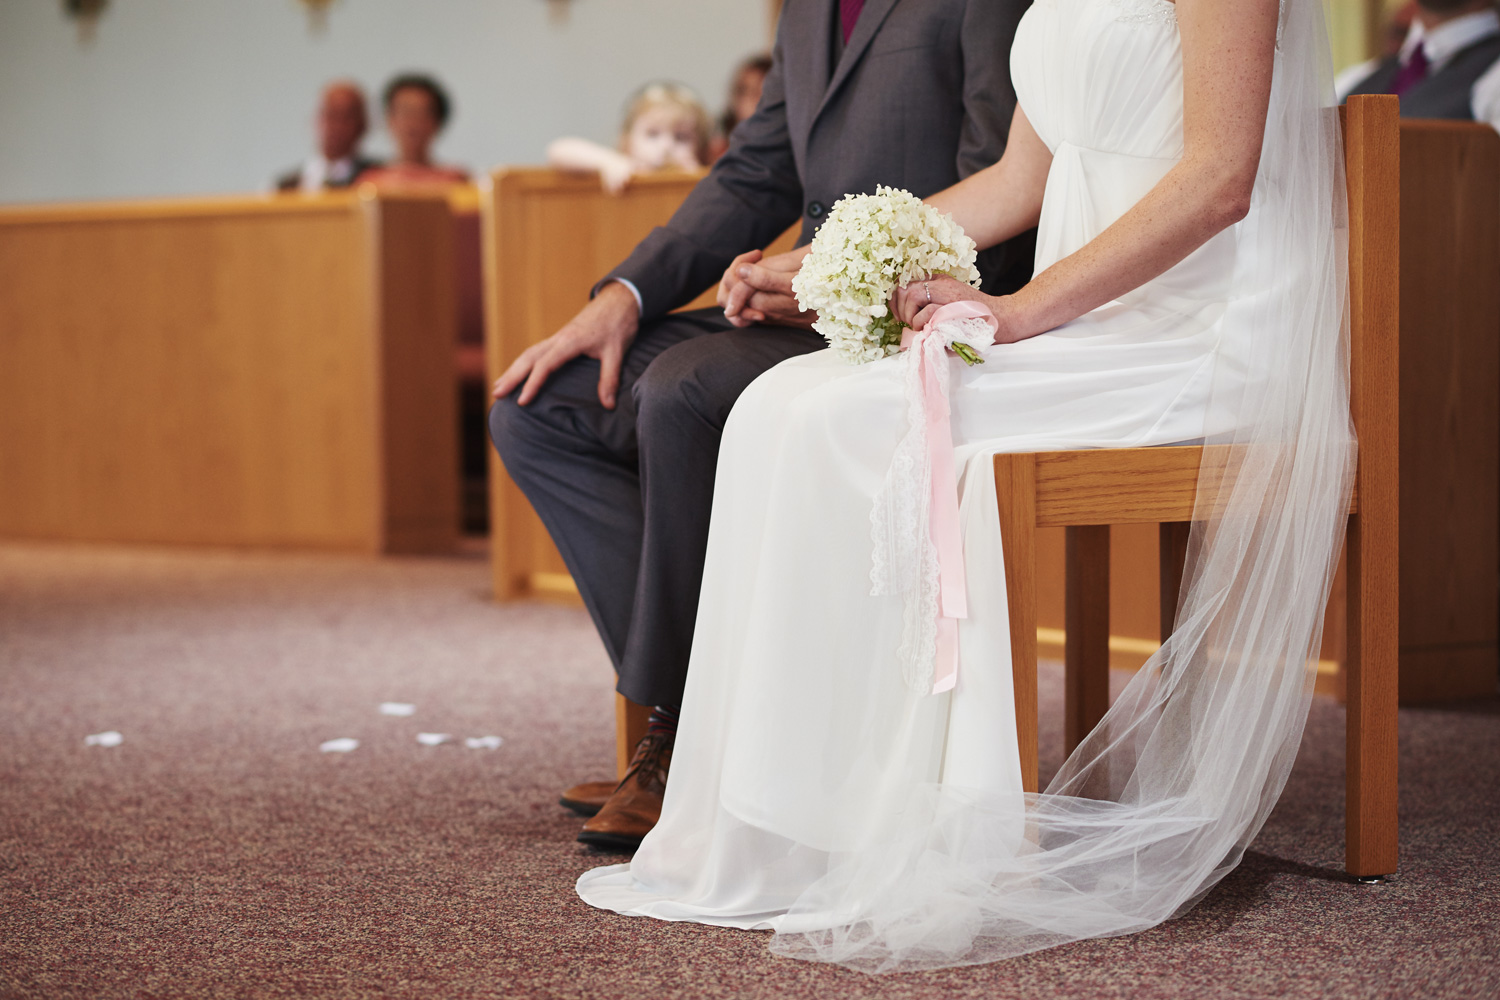 bride-and-groom-holding-hands-during-the-wedding-ceremony.jpg